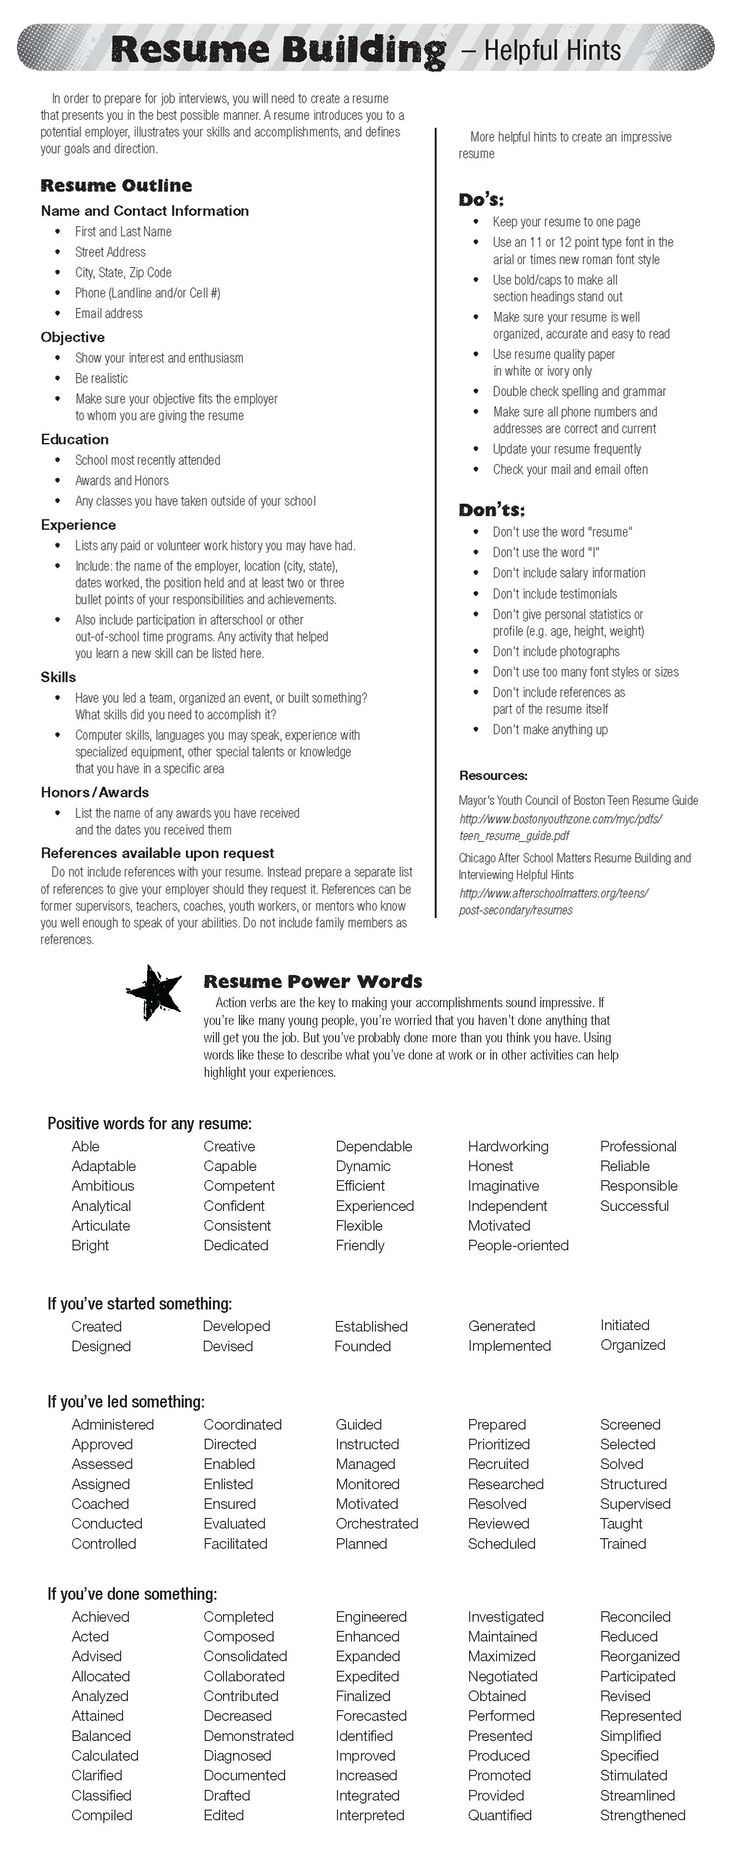 Opposenewapstandardsus  Gorgeous  Ideas About Resume On Pinterest  Cv Format Resume Cv And  With Engaging  Ideas About Resume On Pinterest  Cv Format Resume Cv And Resume Templates With Cute Admin Resume Also Resume For Child Care In Addition Objectives In A Resume And Cover Letter Of Resume As Well As Plumber Resume Additionally Writer Resume From Pinterestcom With Opposenewapstandardsus  Engaging  Ideas About Resume On Pinterest  Cv Format Resume Cv And  With Cute  Ideas About Resume On Pinterest  Cv Format Resume Cv And Resume Templates And Gorgeous Admin Resume Also Resume For Child Care In Addition Objectives In A Resume From Pinterestcom